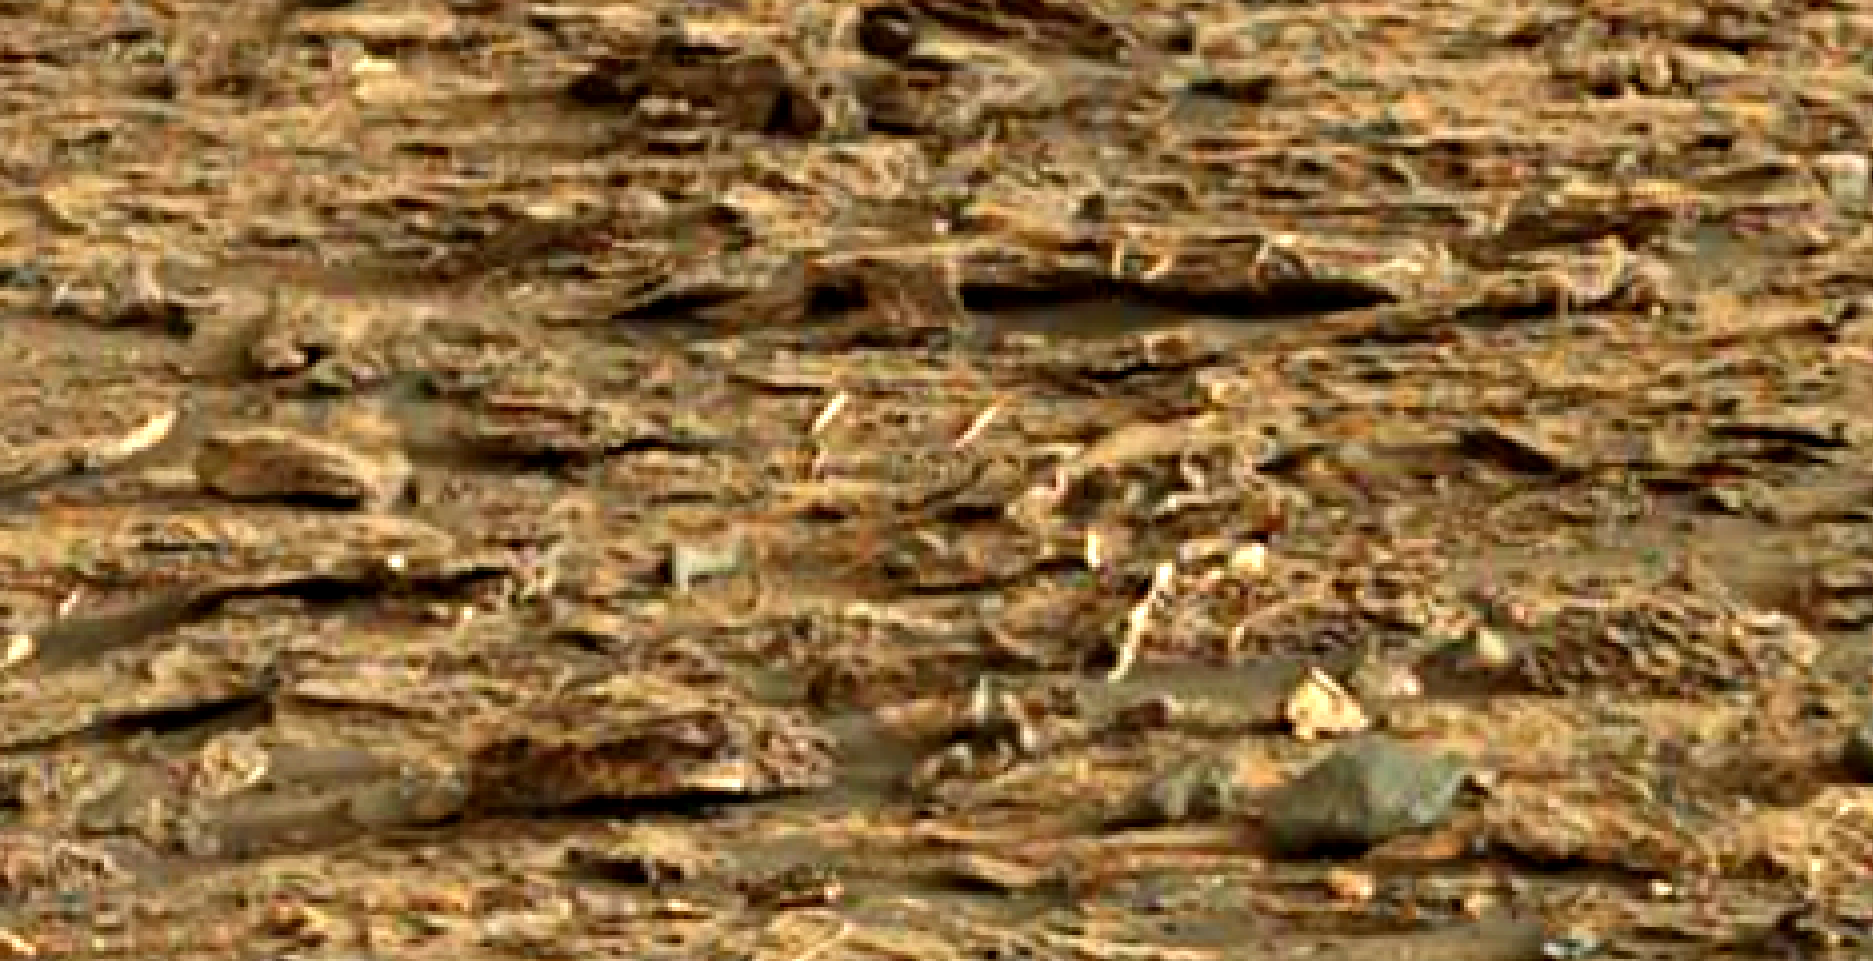 mars-sol-1448-anomaly-artifacts-22-was-life-on-mars